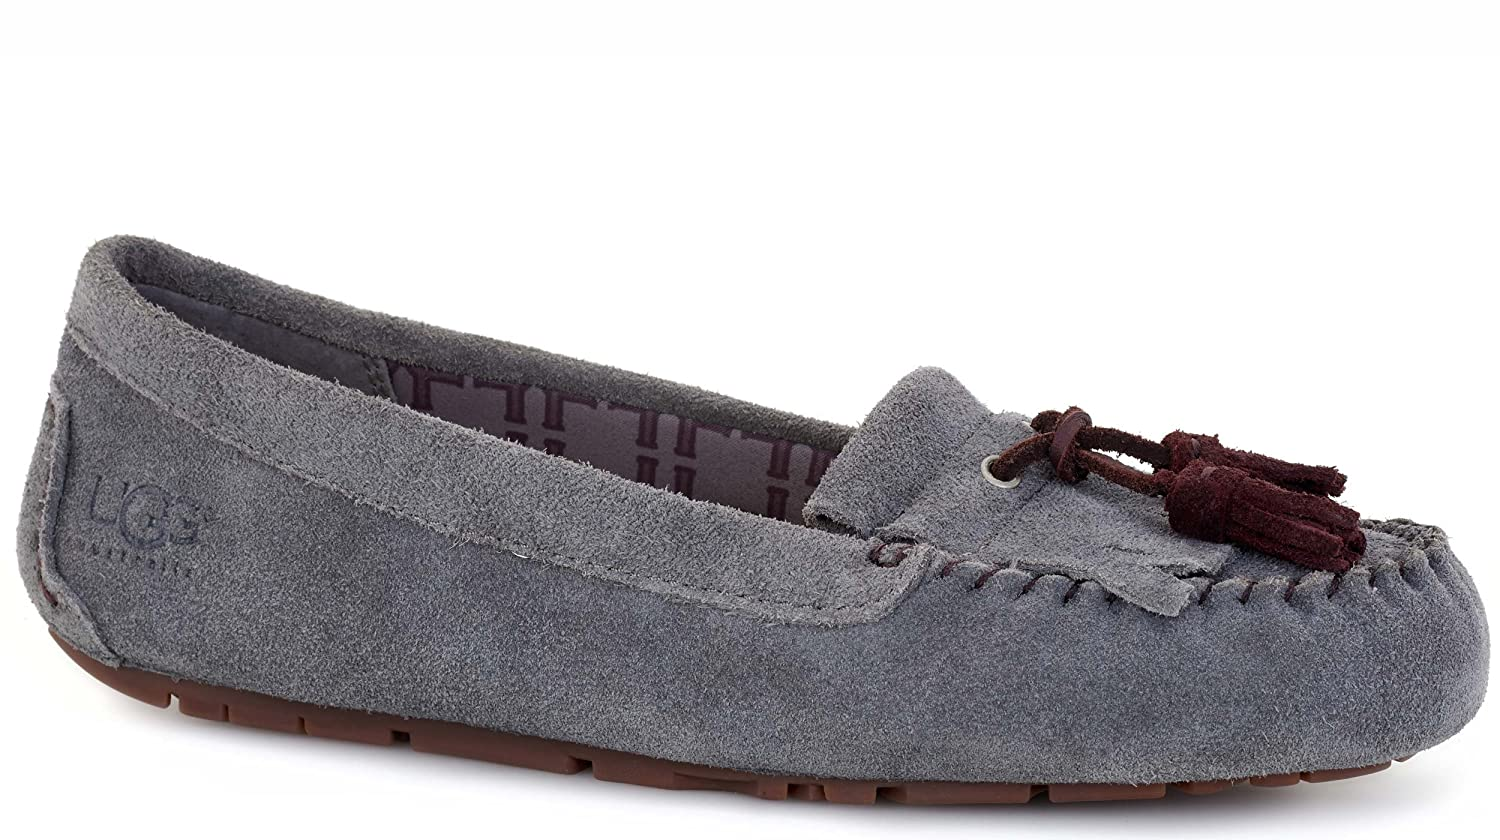 d18ae96d4cc UGG Womens Lizzy Moccasins in Granite 9 US: Amazon.co.uk: Shoes & Bags